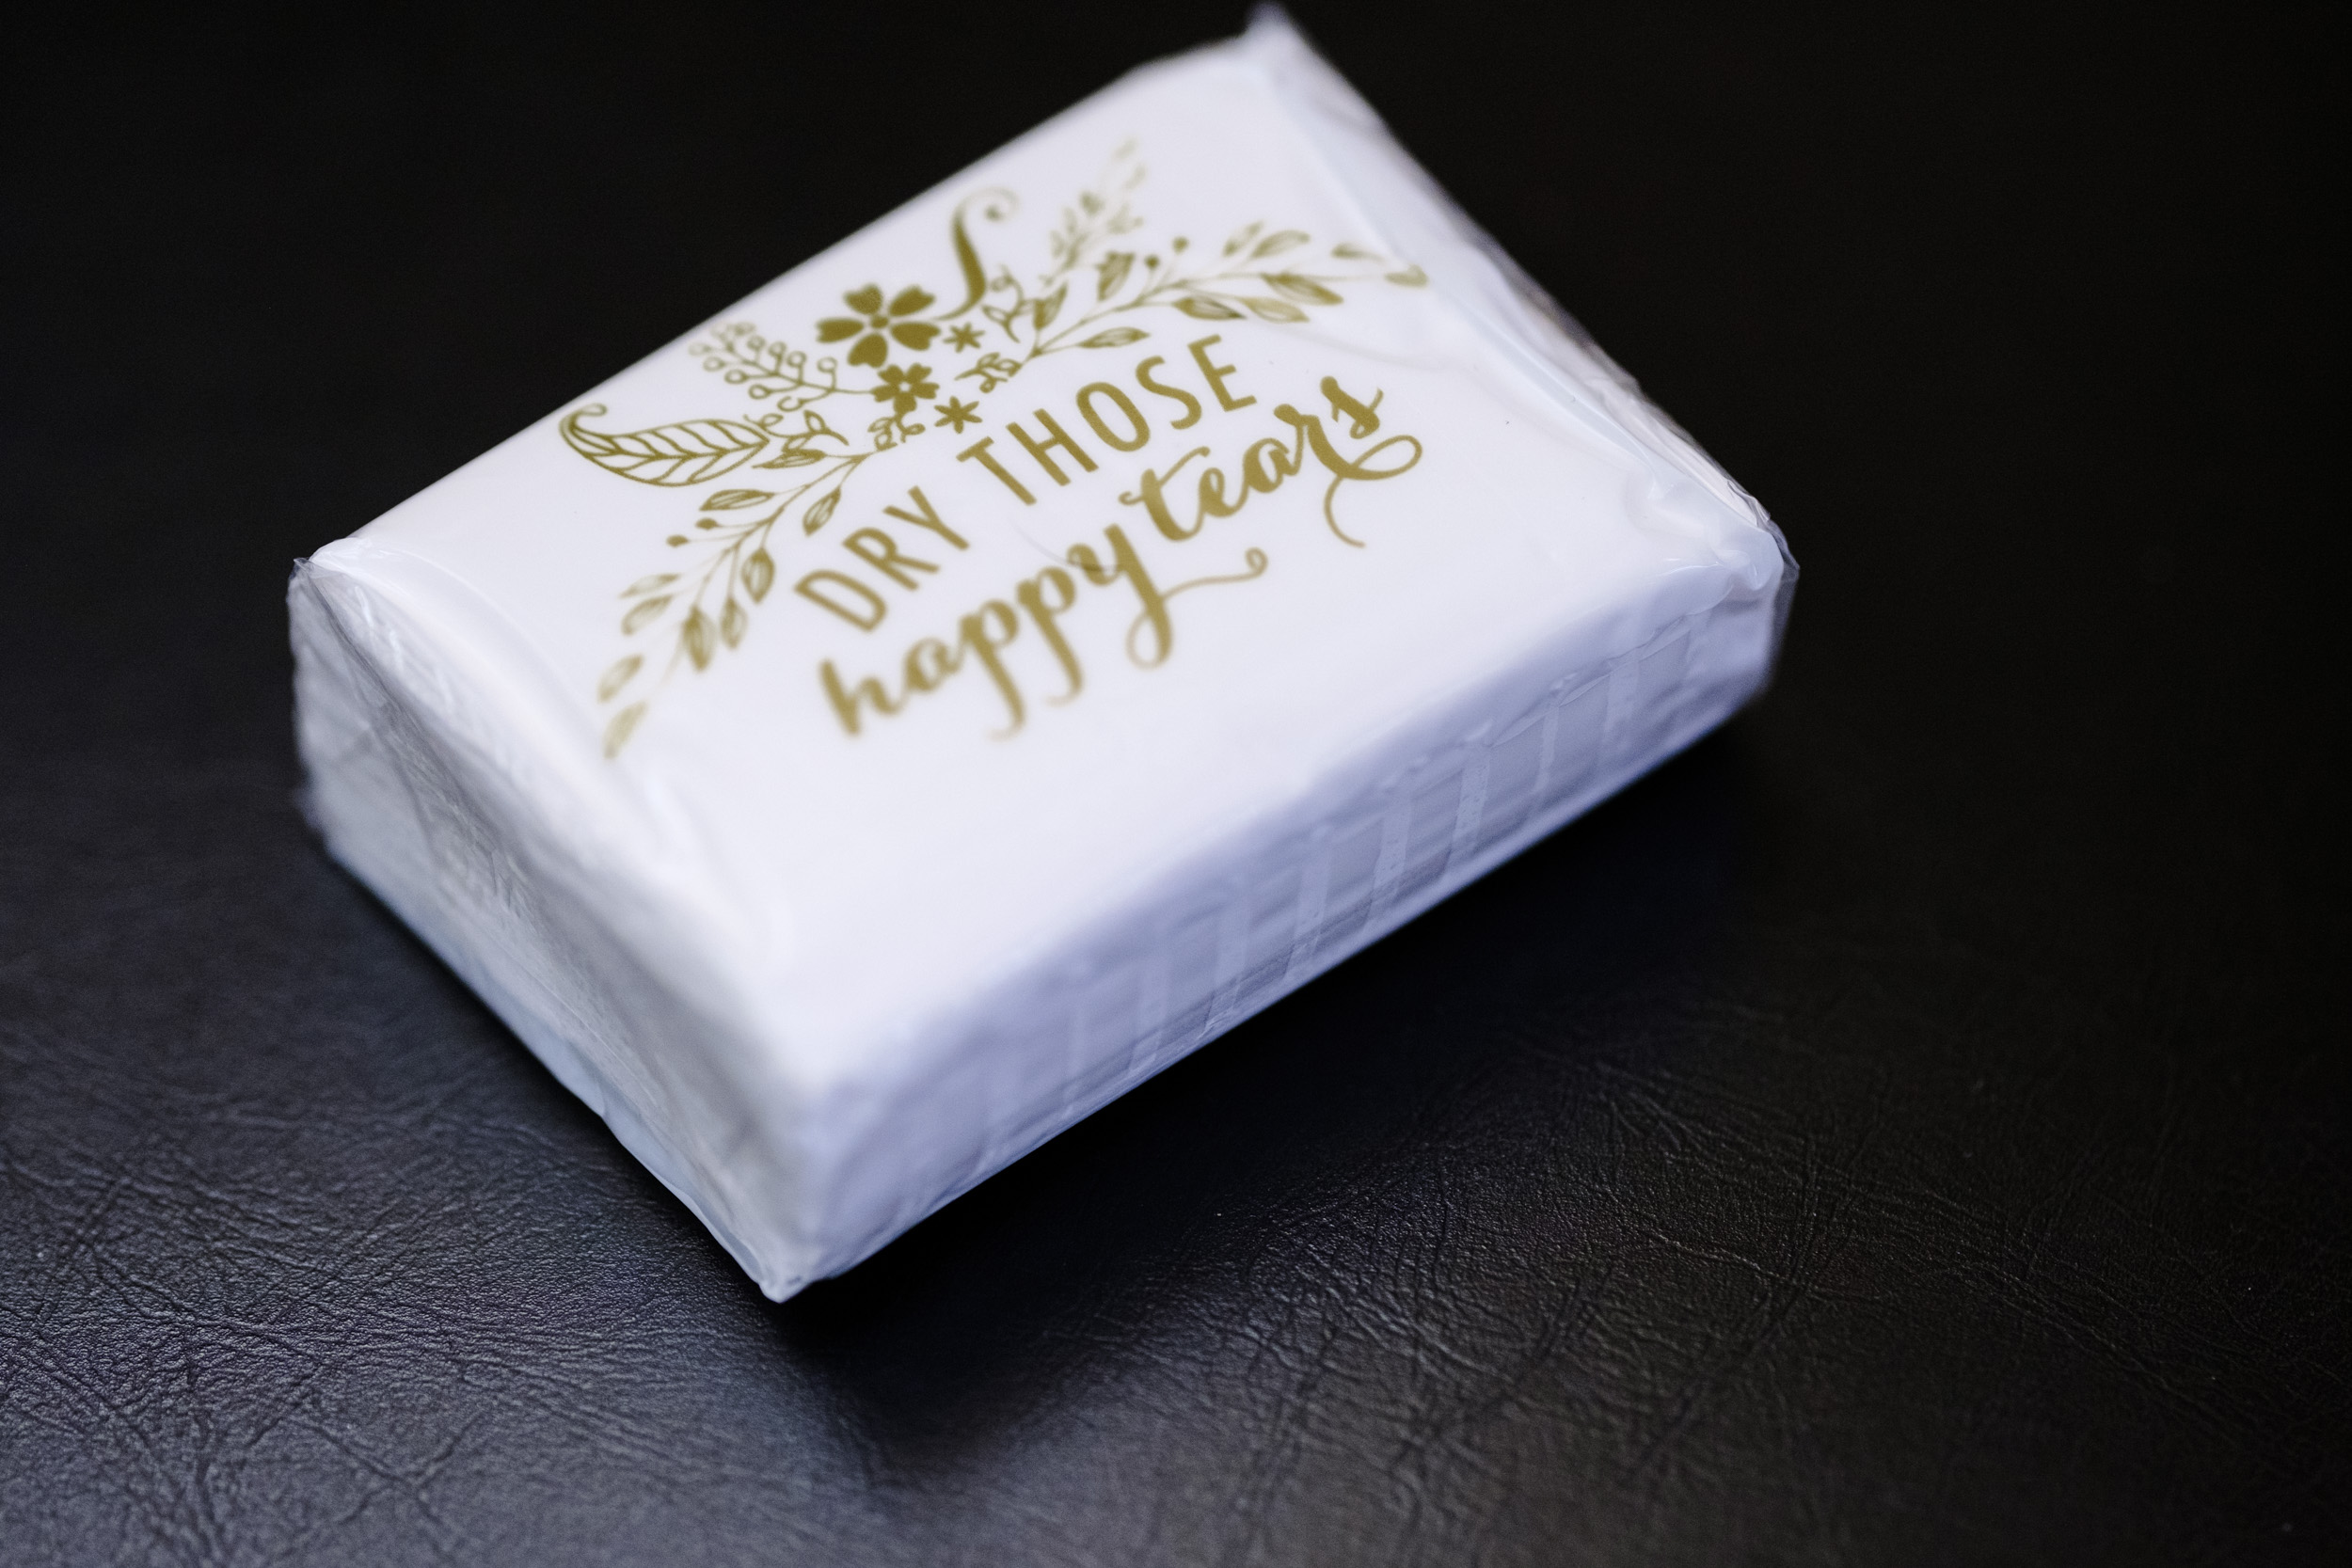 Kleenex for guests at Pabst best place wedding in milwaukee, wisconsin by rockford wedding photographer b. adams photography